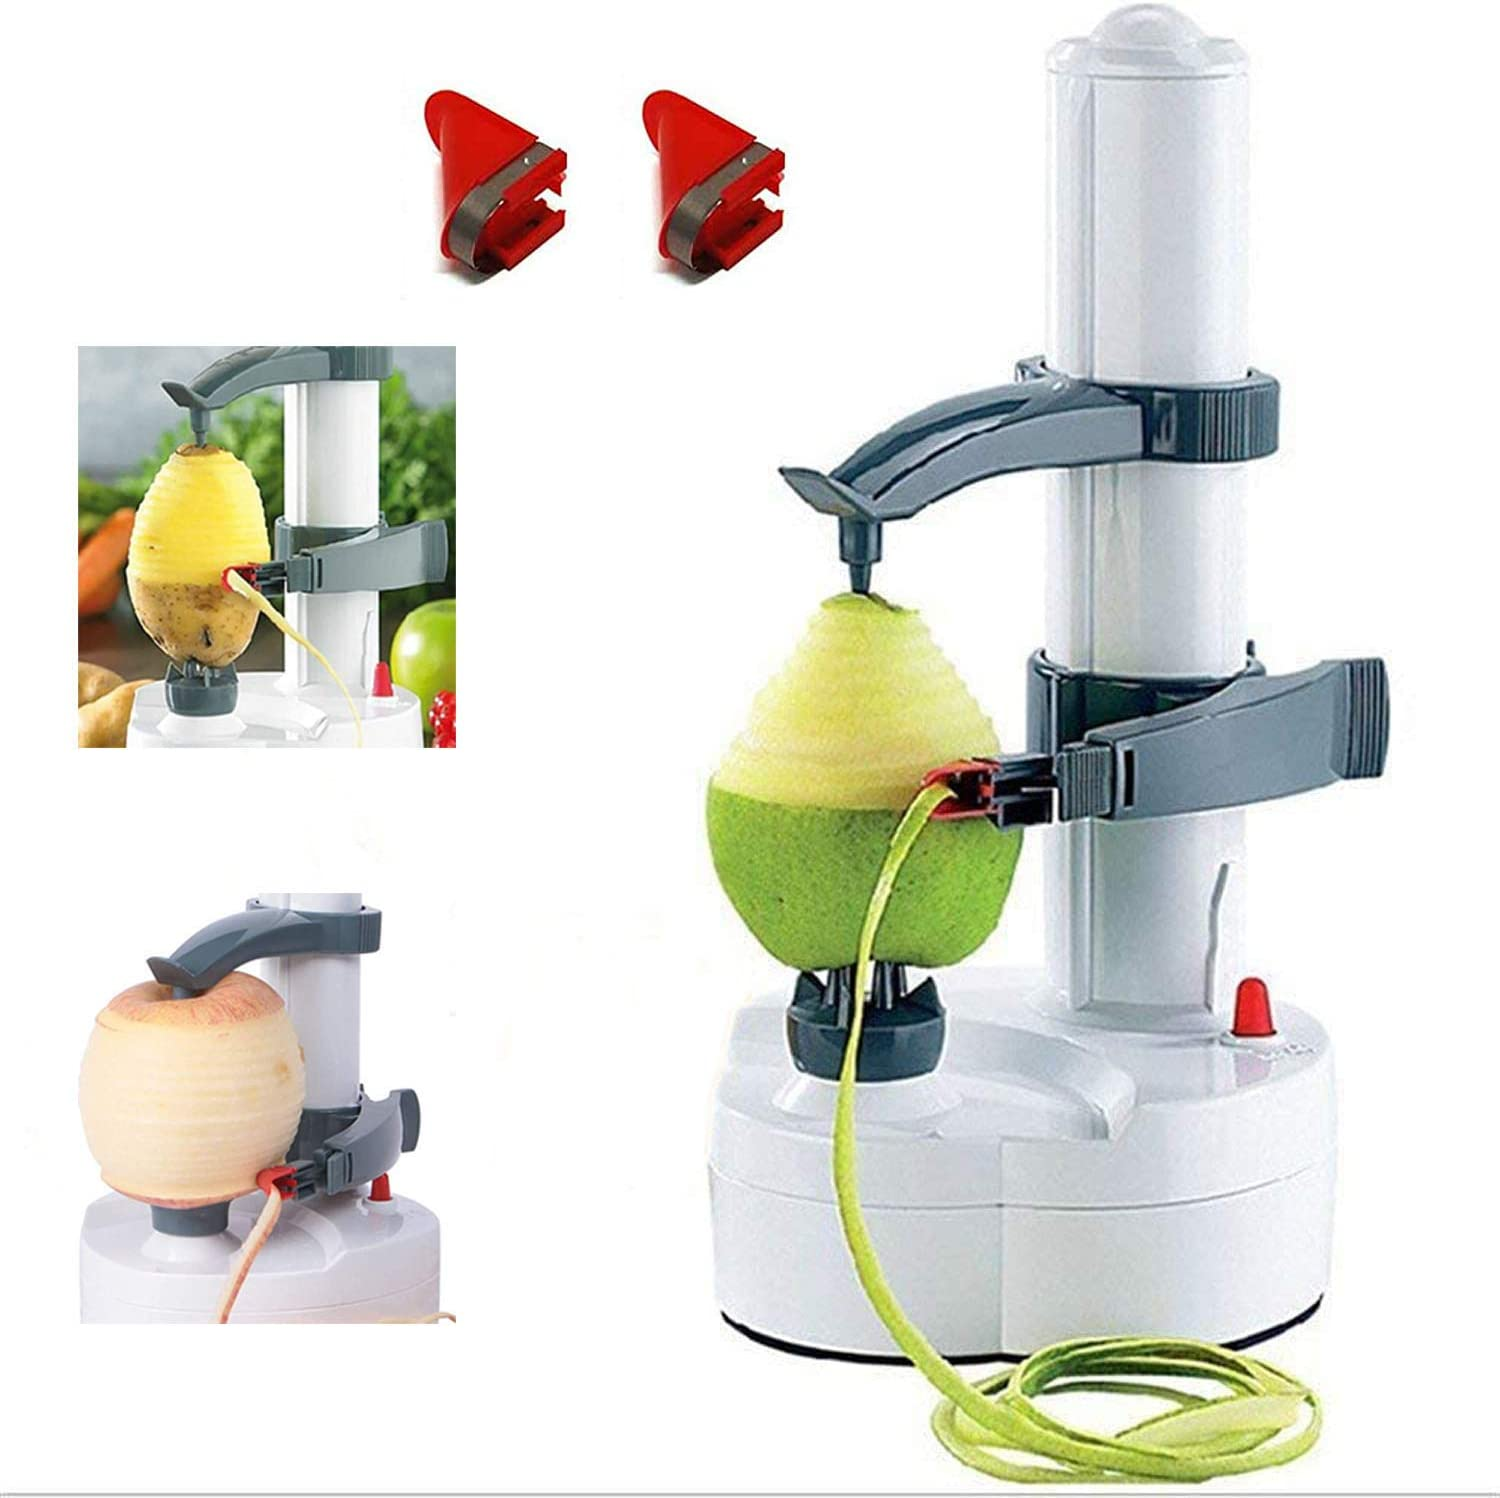 JIBIL Automatic Potato/Apple Peeler, Electric Rotating Fruits Vegetables Cutter Stainless Steel Blades Apple Paring Machine Kitchen Peeling Tool (White)